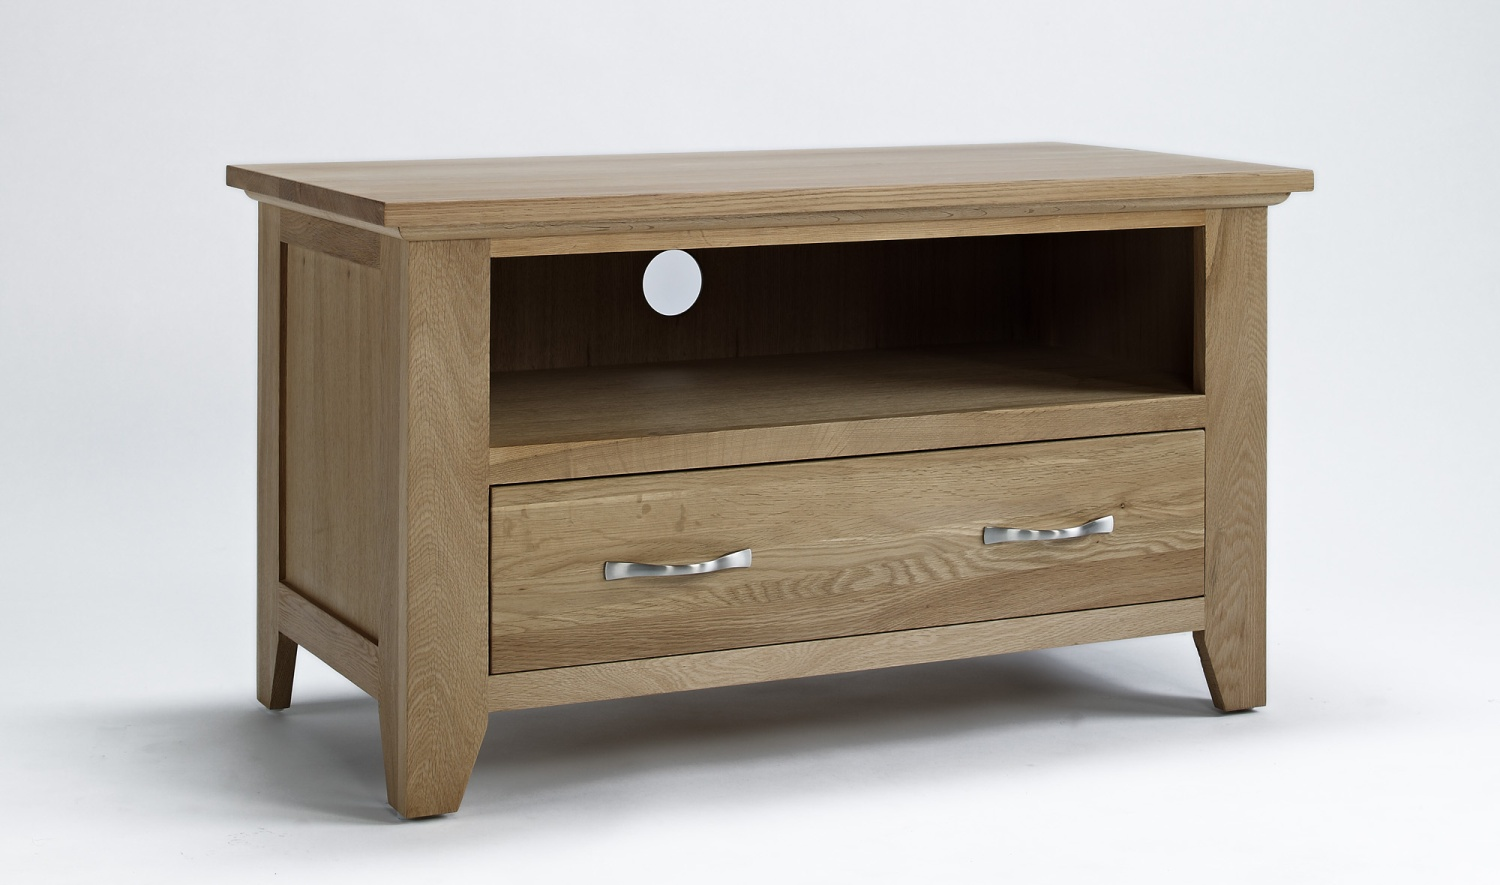 Compton solid oak living room furniture small tv cabinet for Tv stand for small living room